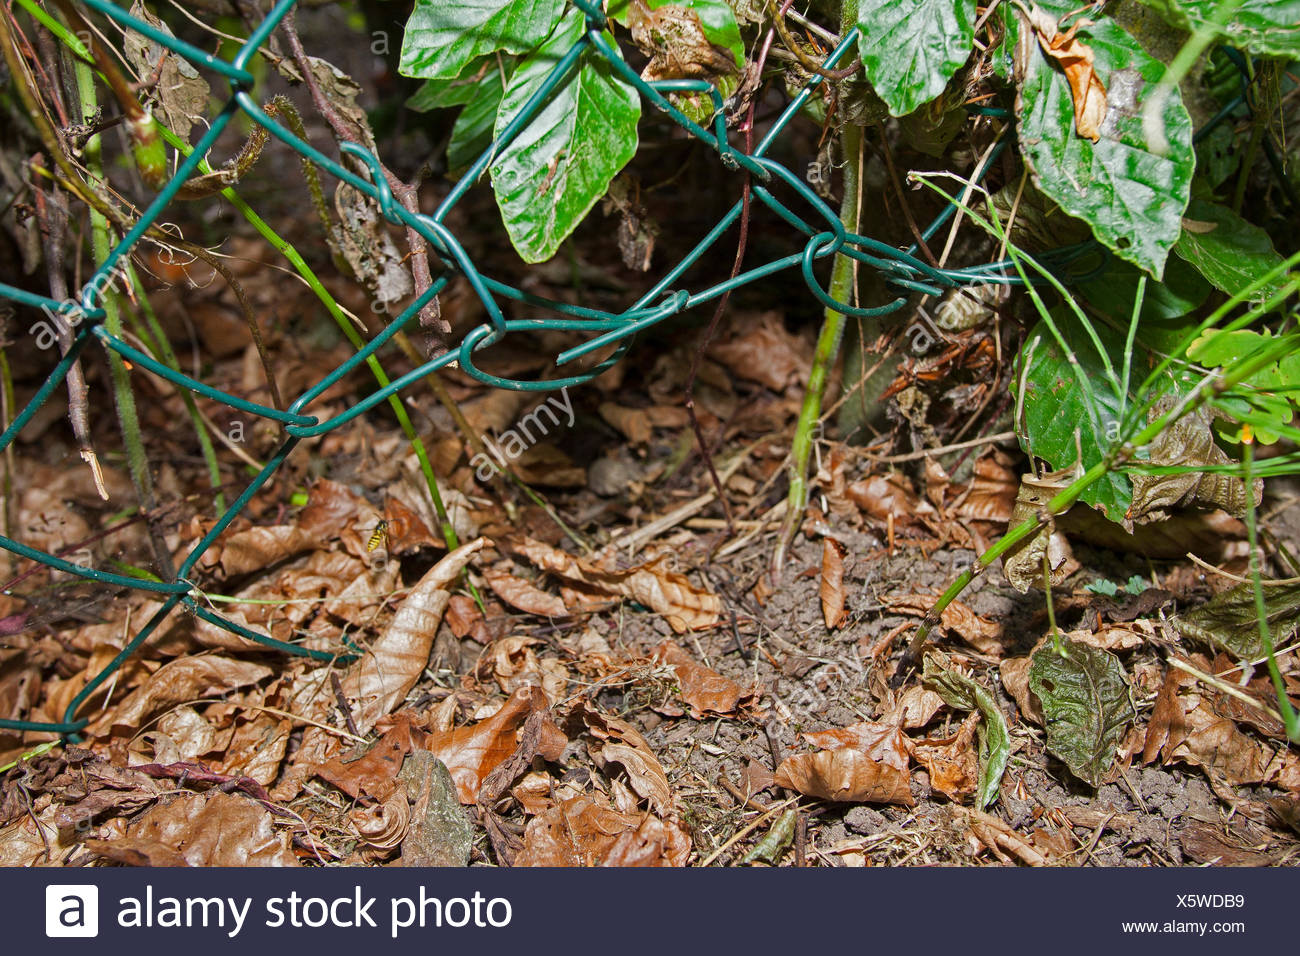 hole in a fence to offer an opening to hedgehogs, Germany - Stock Image